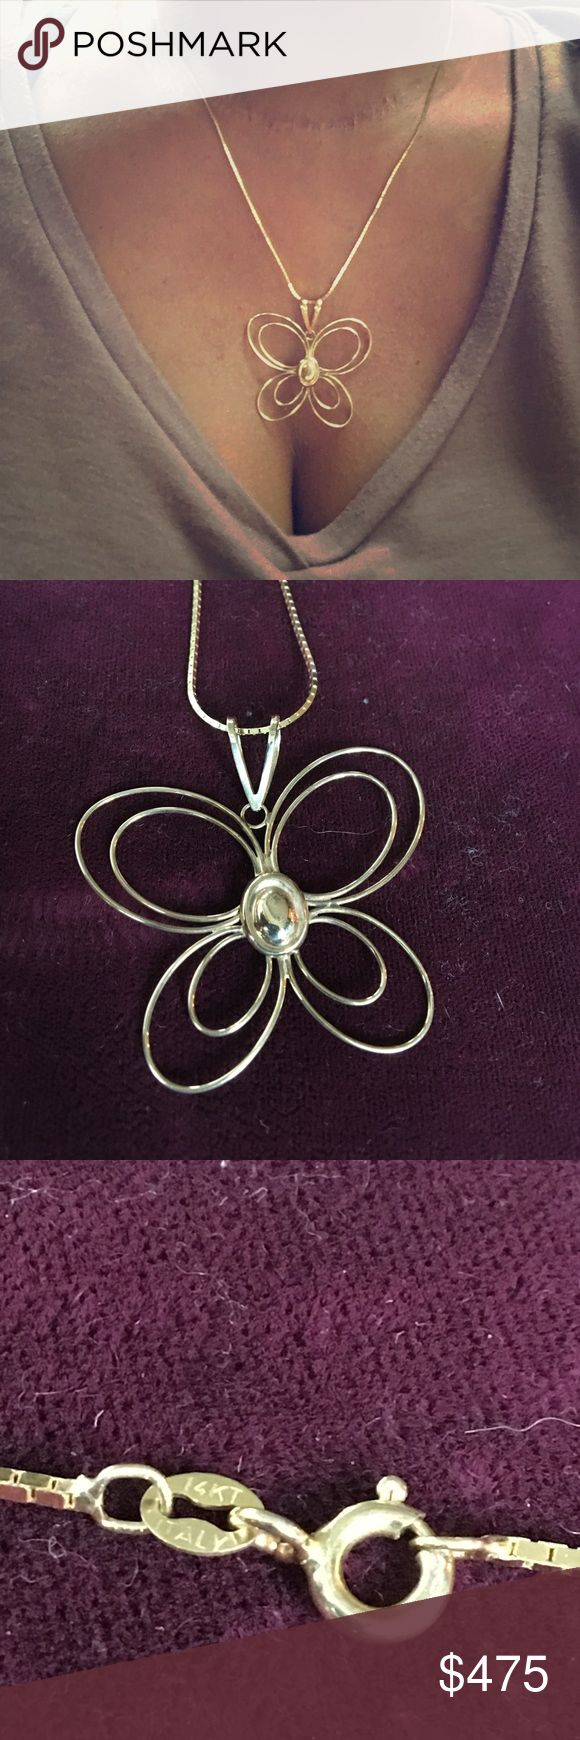 14 karat gold butterfly necklace 14 karat  20 inches necklace Jewelry Necklaces